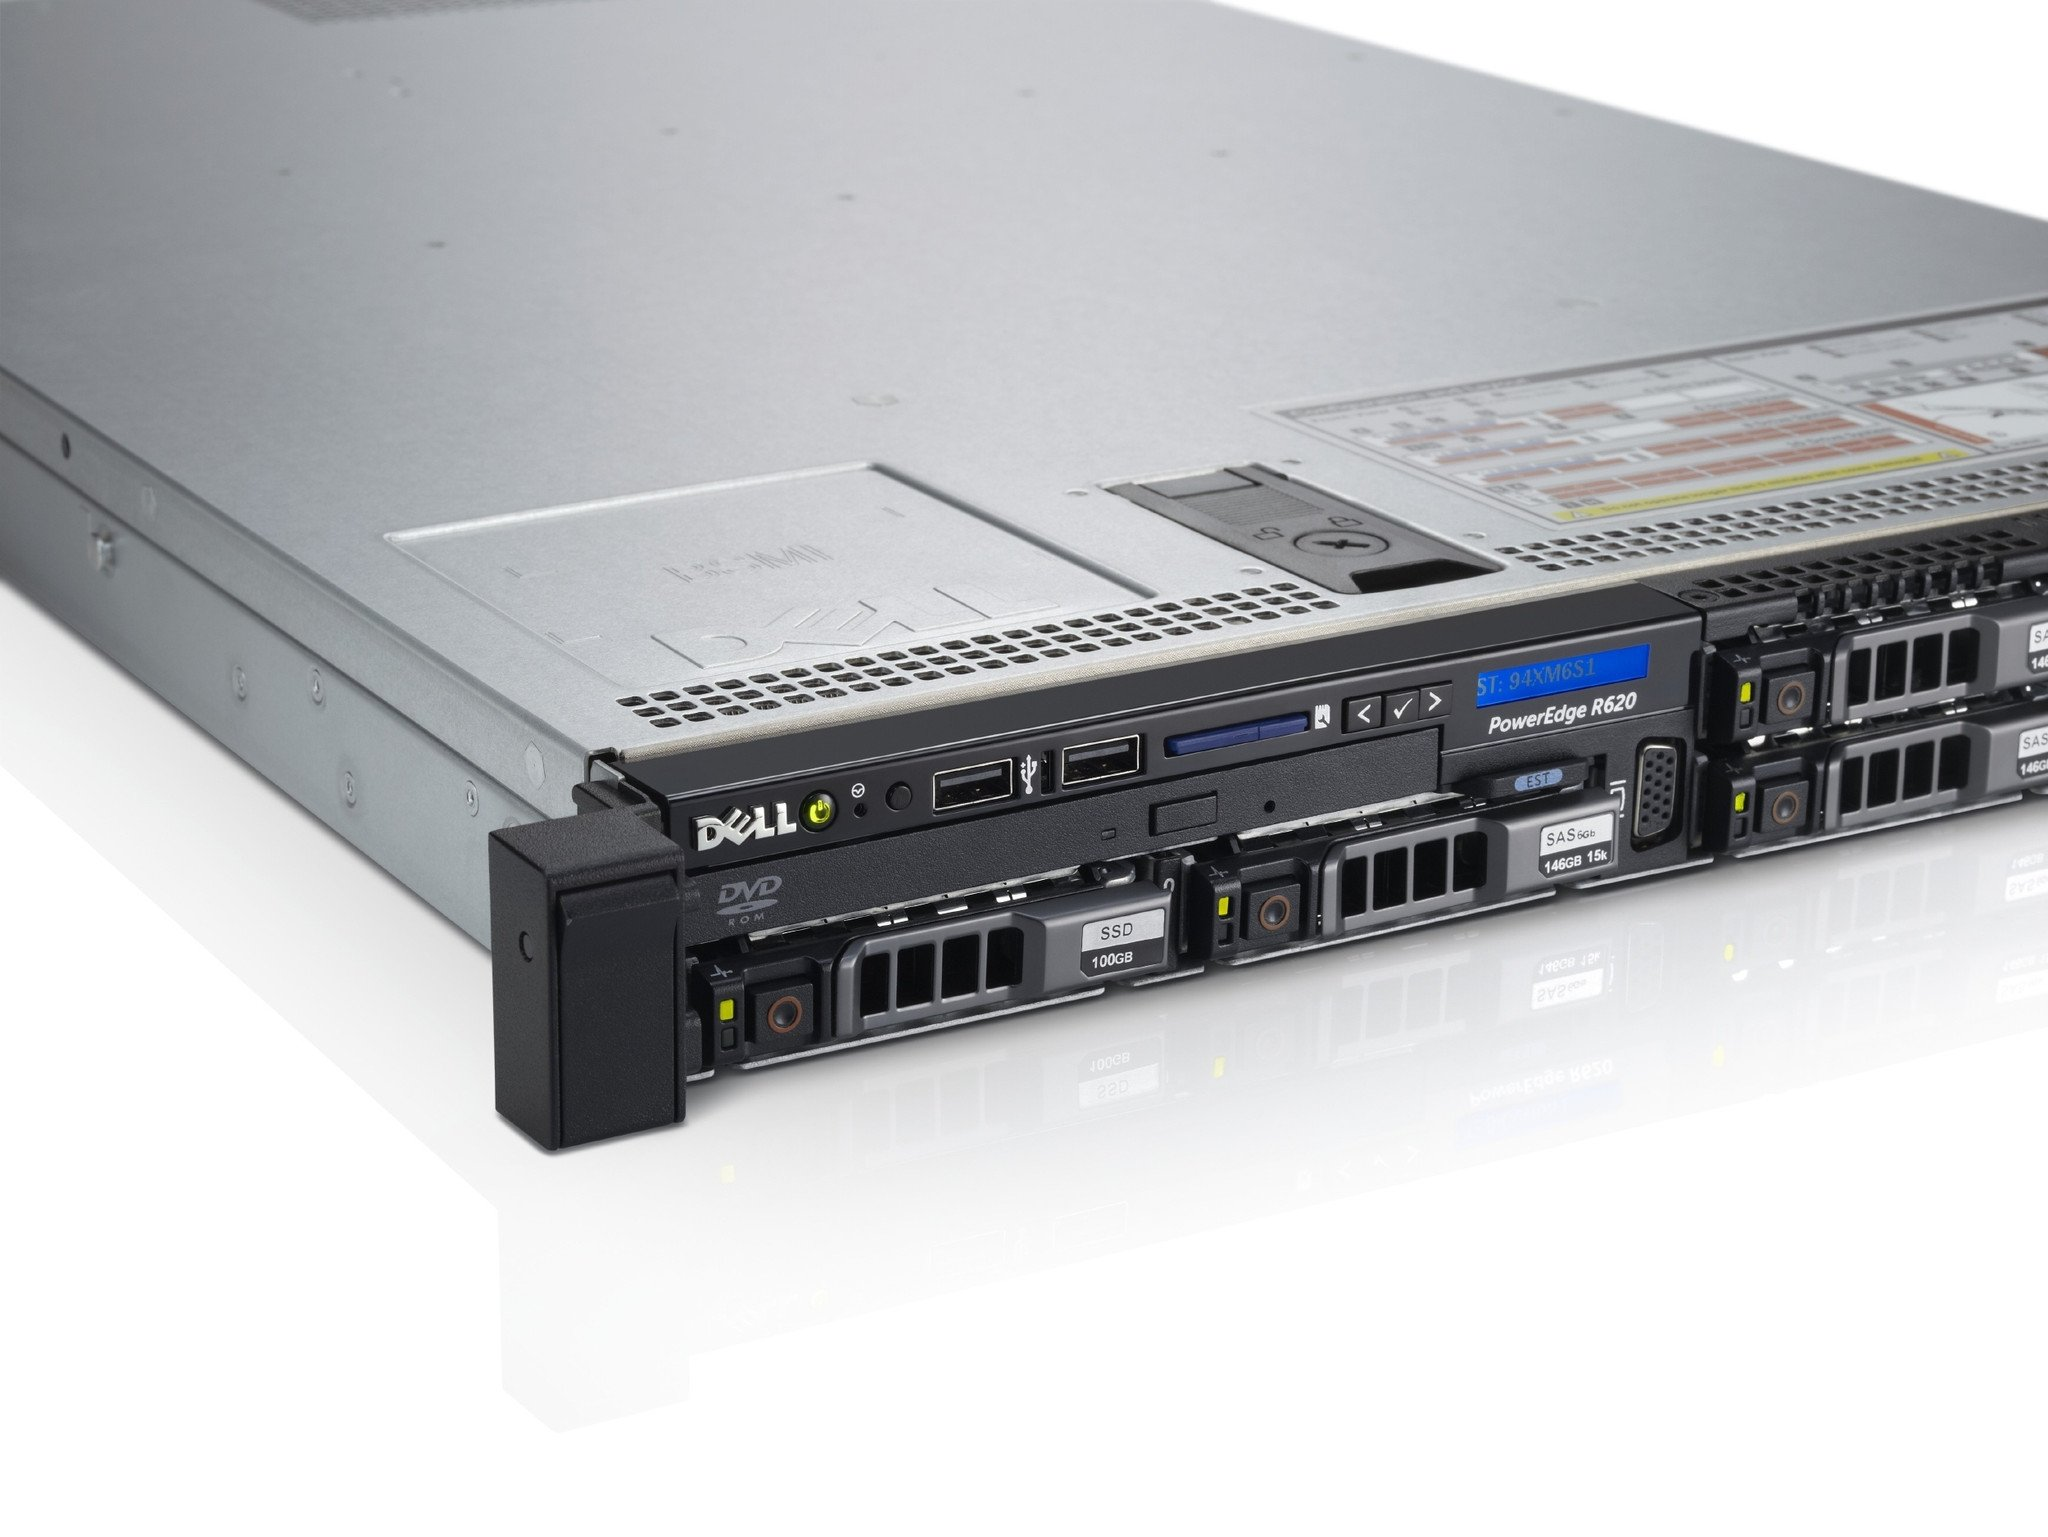 "Подробное фото Сервер DELL PowerEdge R620 2*Xeon E5-2667v2 96Gb 12800R DDR3 8x noHDD 2.5"" SAS RAID Perc H710 mini, 512Mb, DVD, 2*PSU 750W"